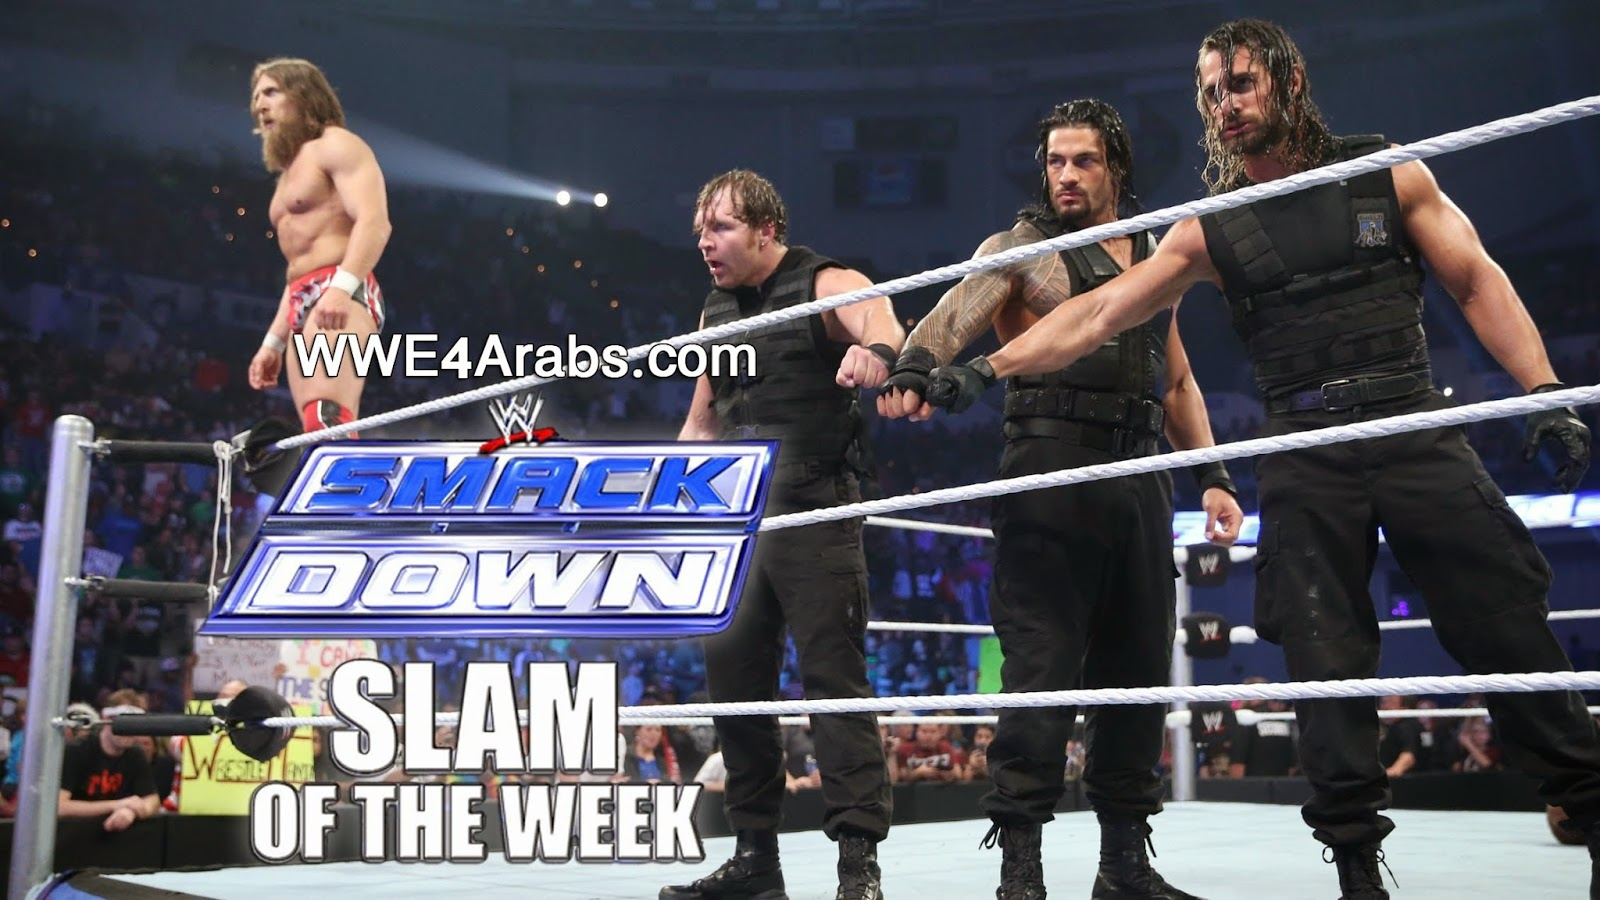 WWE SmackDown Slam of the Week